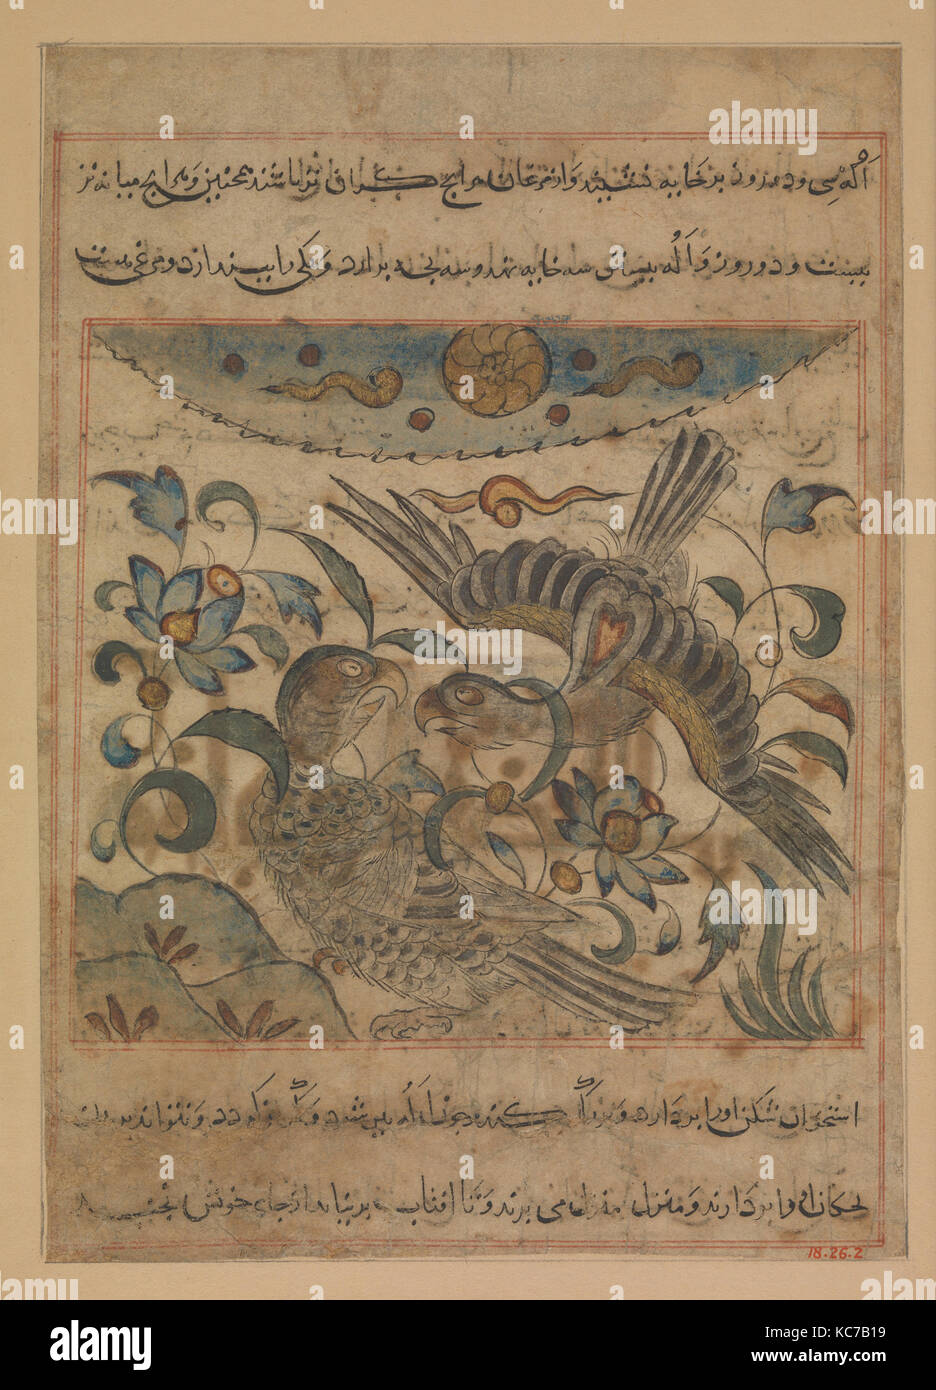 'Pair of Eagles', Folio from a Manafi' al-Hayawan (On the Usefulness of Animals) of Ibn Bakhtishu', - Stock Image